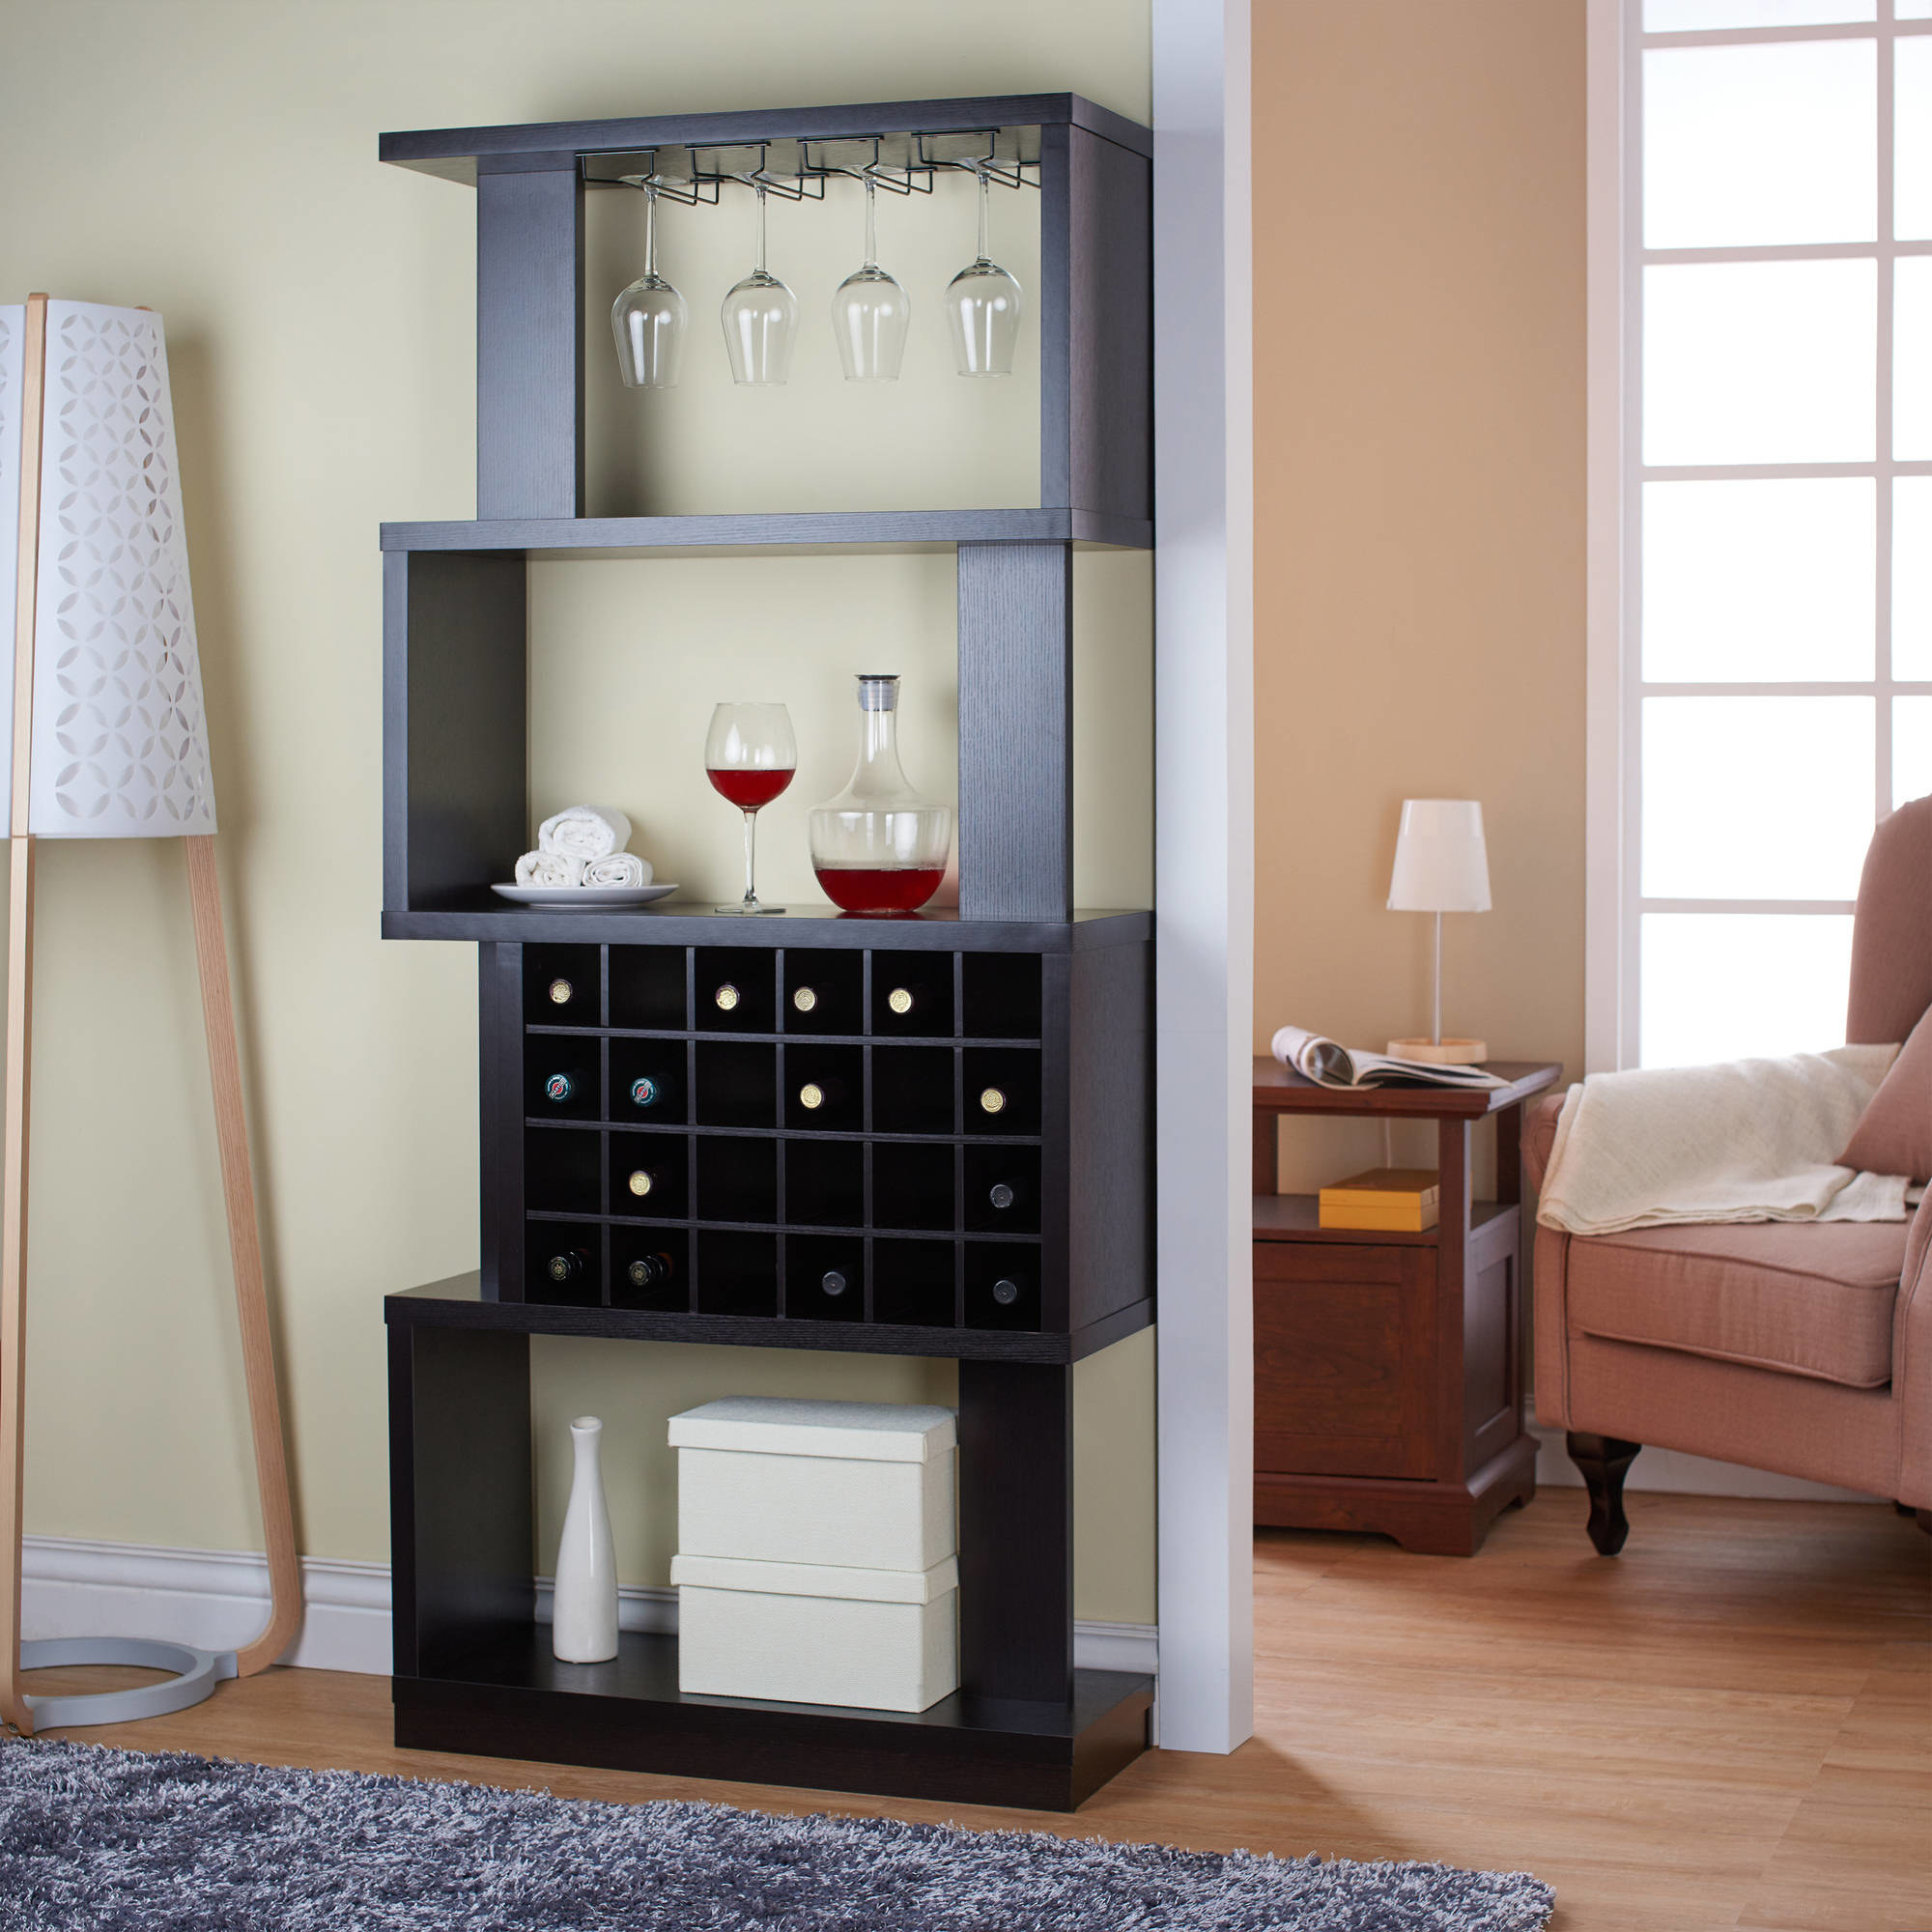 the wine stand in the living room with glasses and wine bottles inside of it